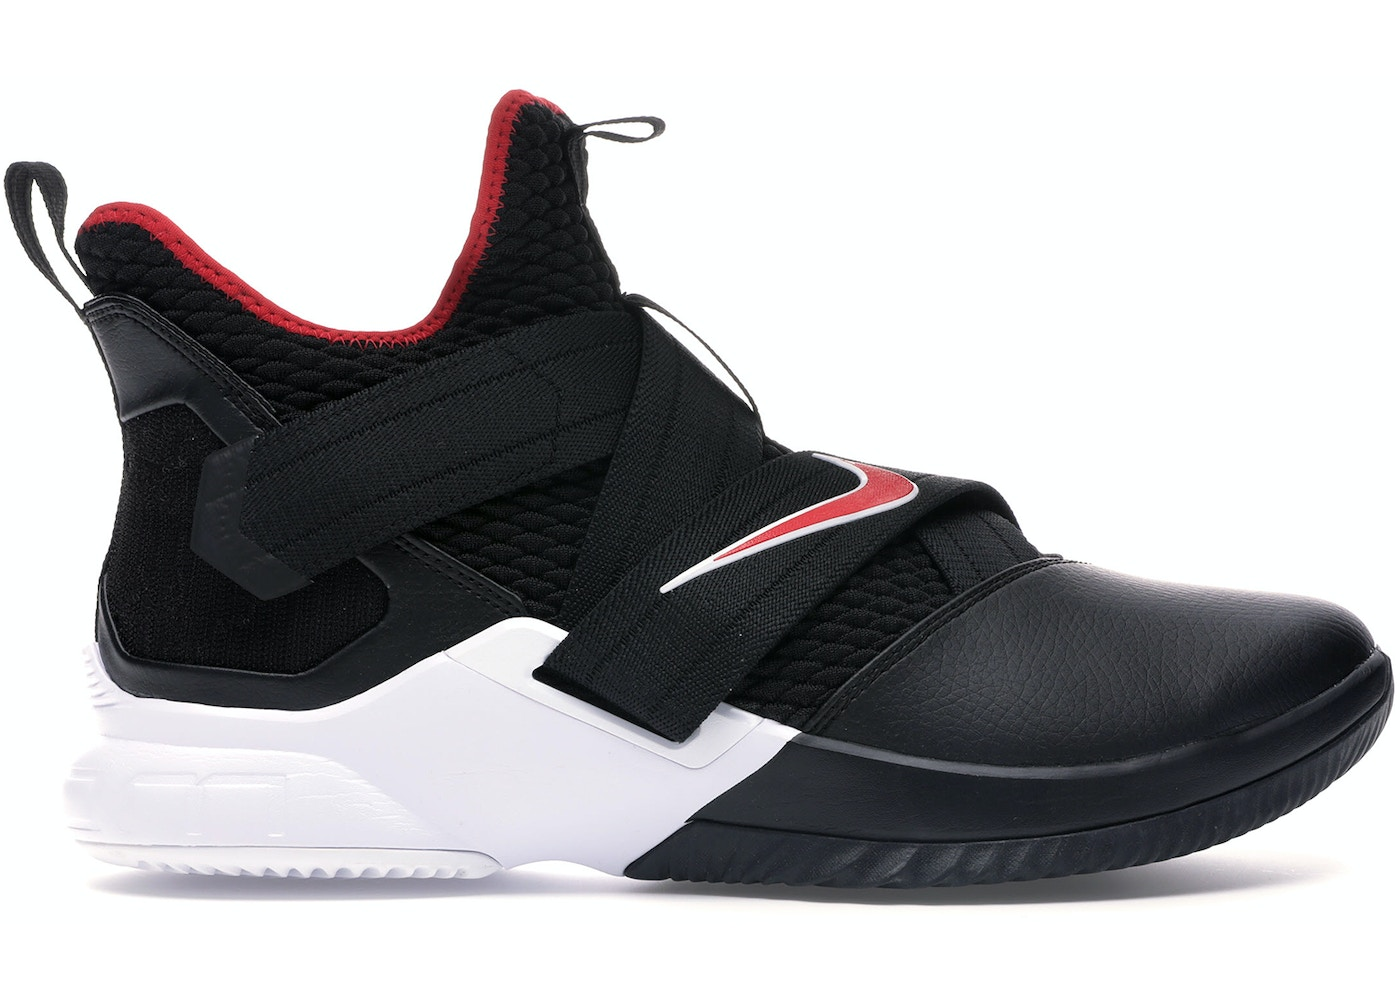 huge discount 0e774 14055 LeBron Zoom Soldier 12 Bred